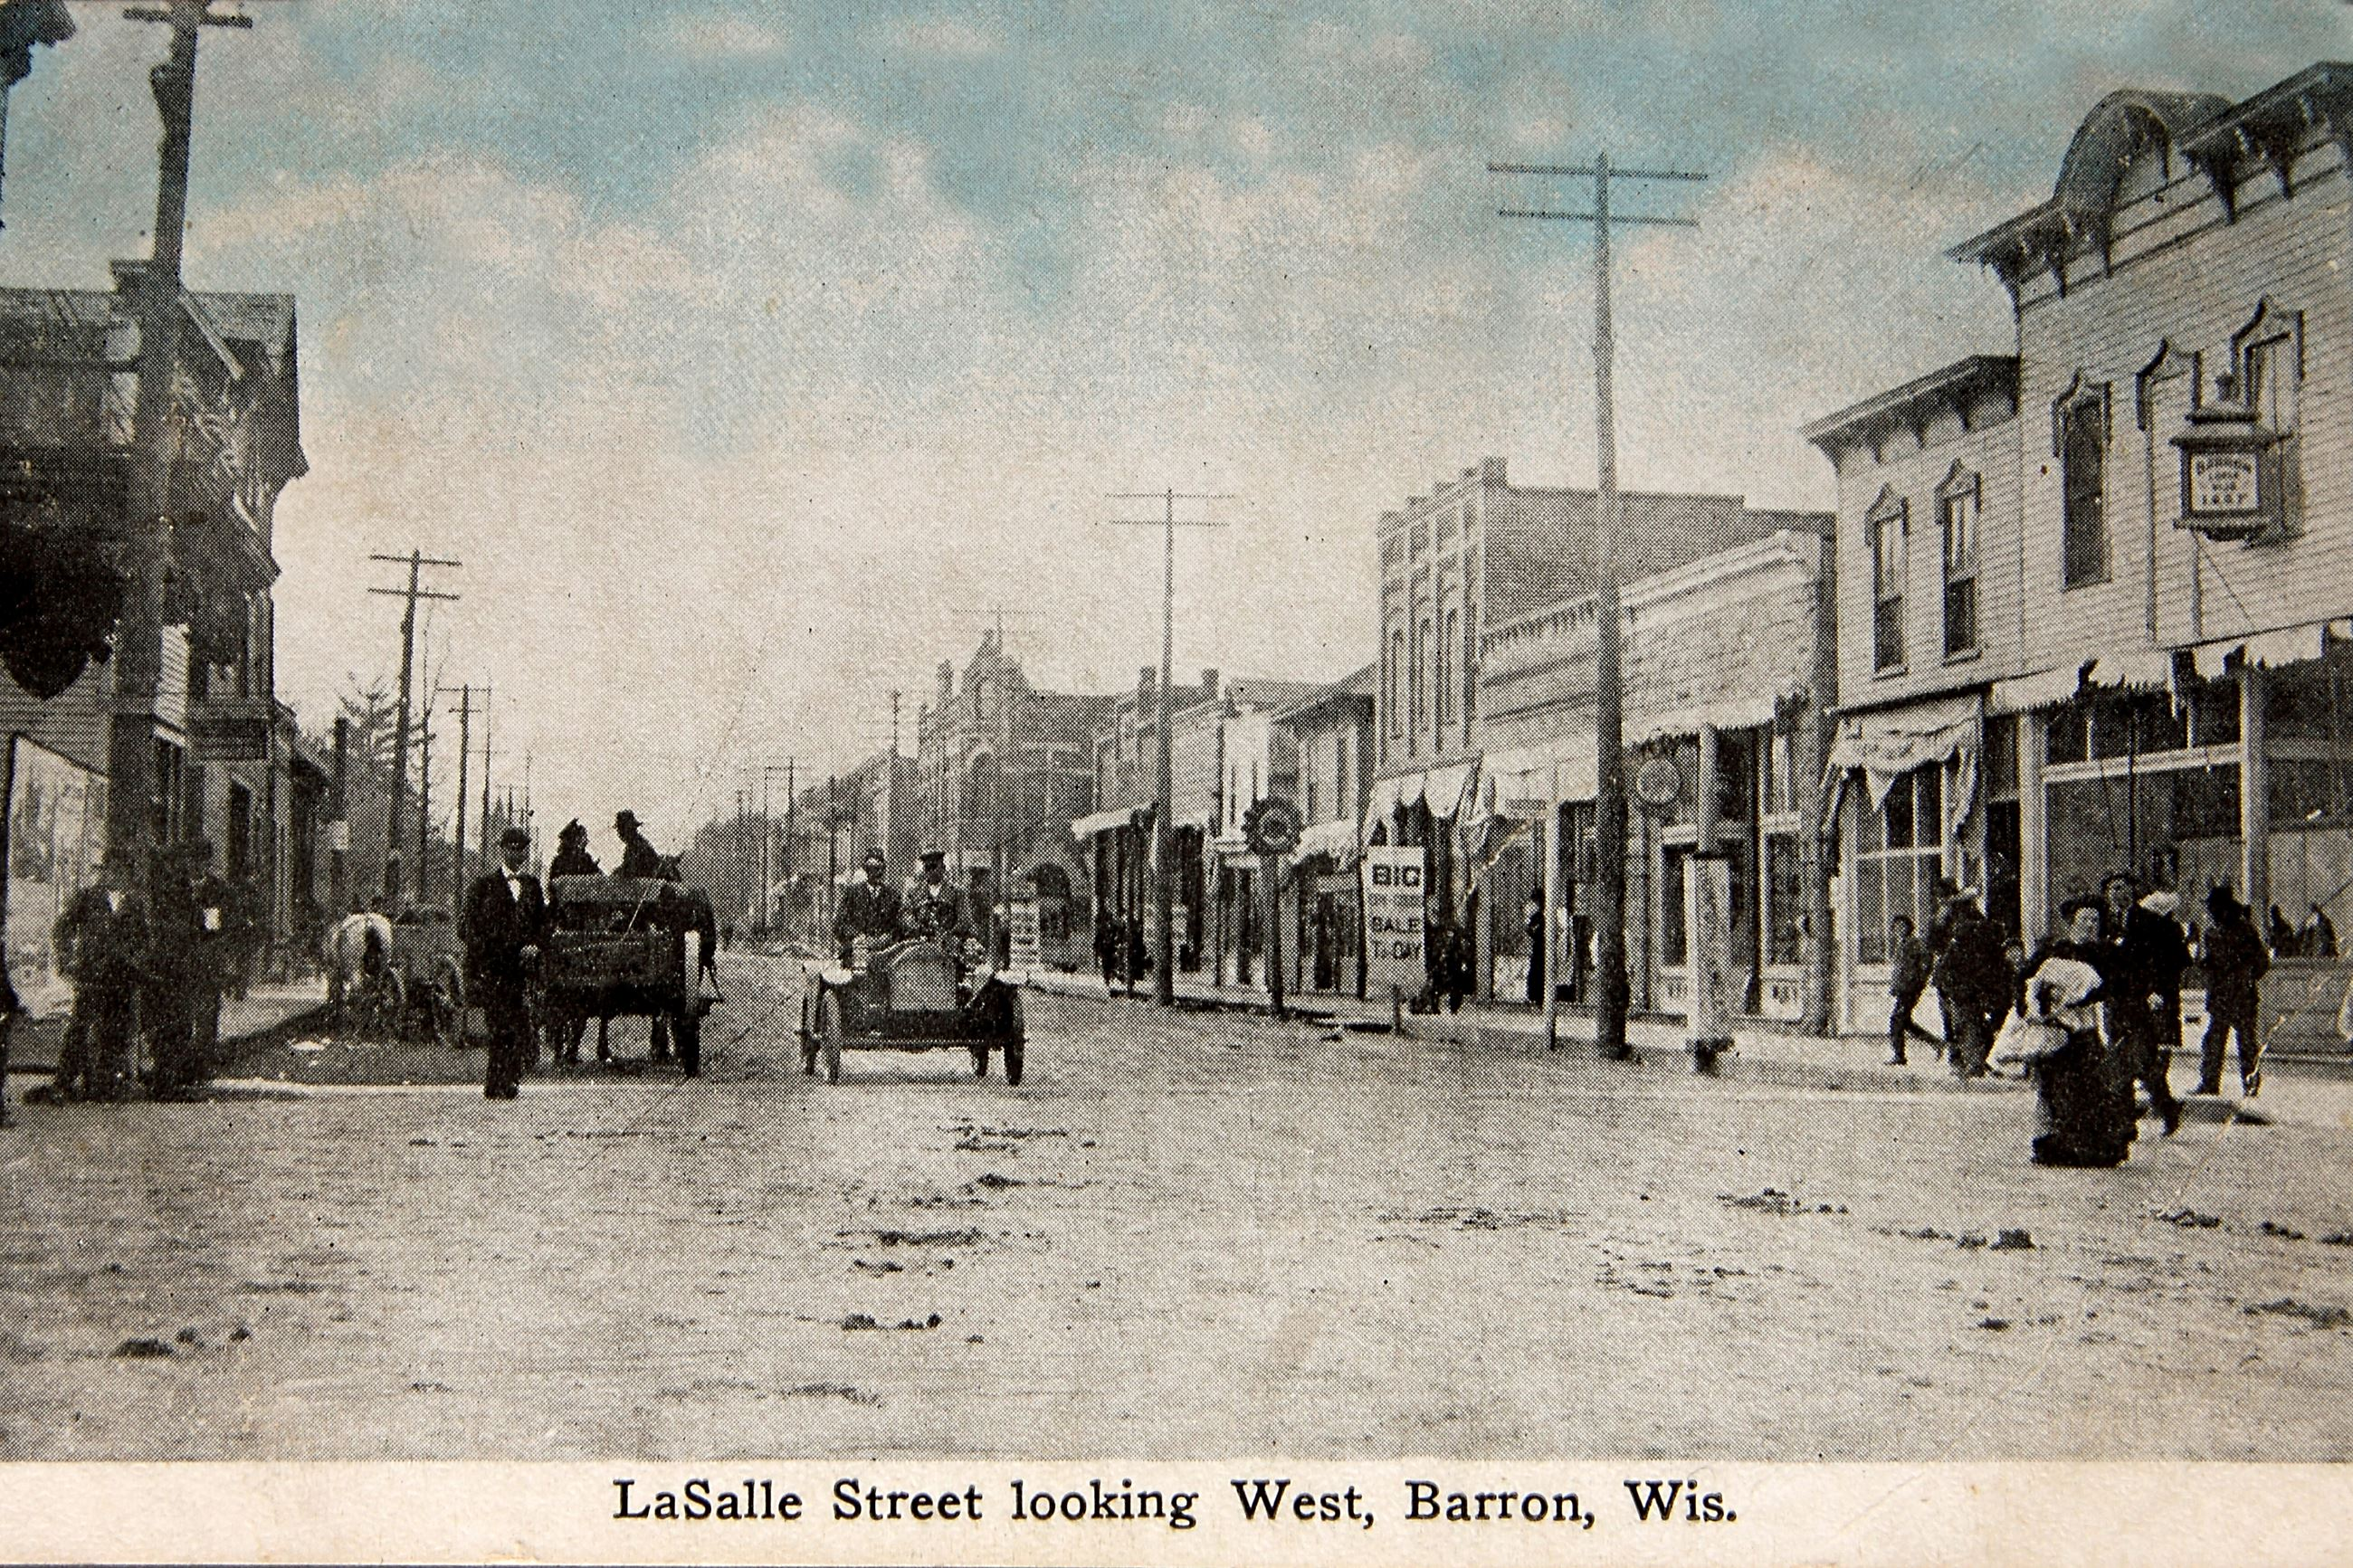 Vintage Barron - LaSalle street looking west